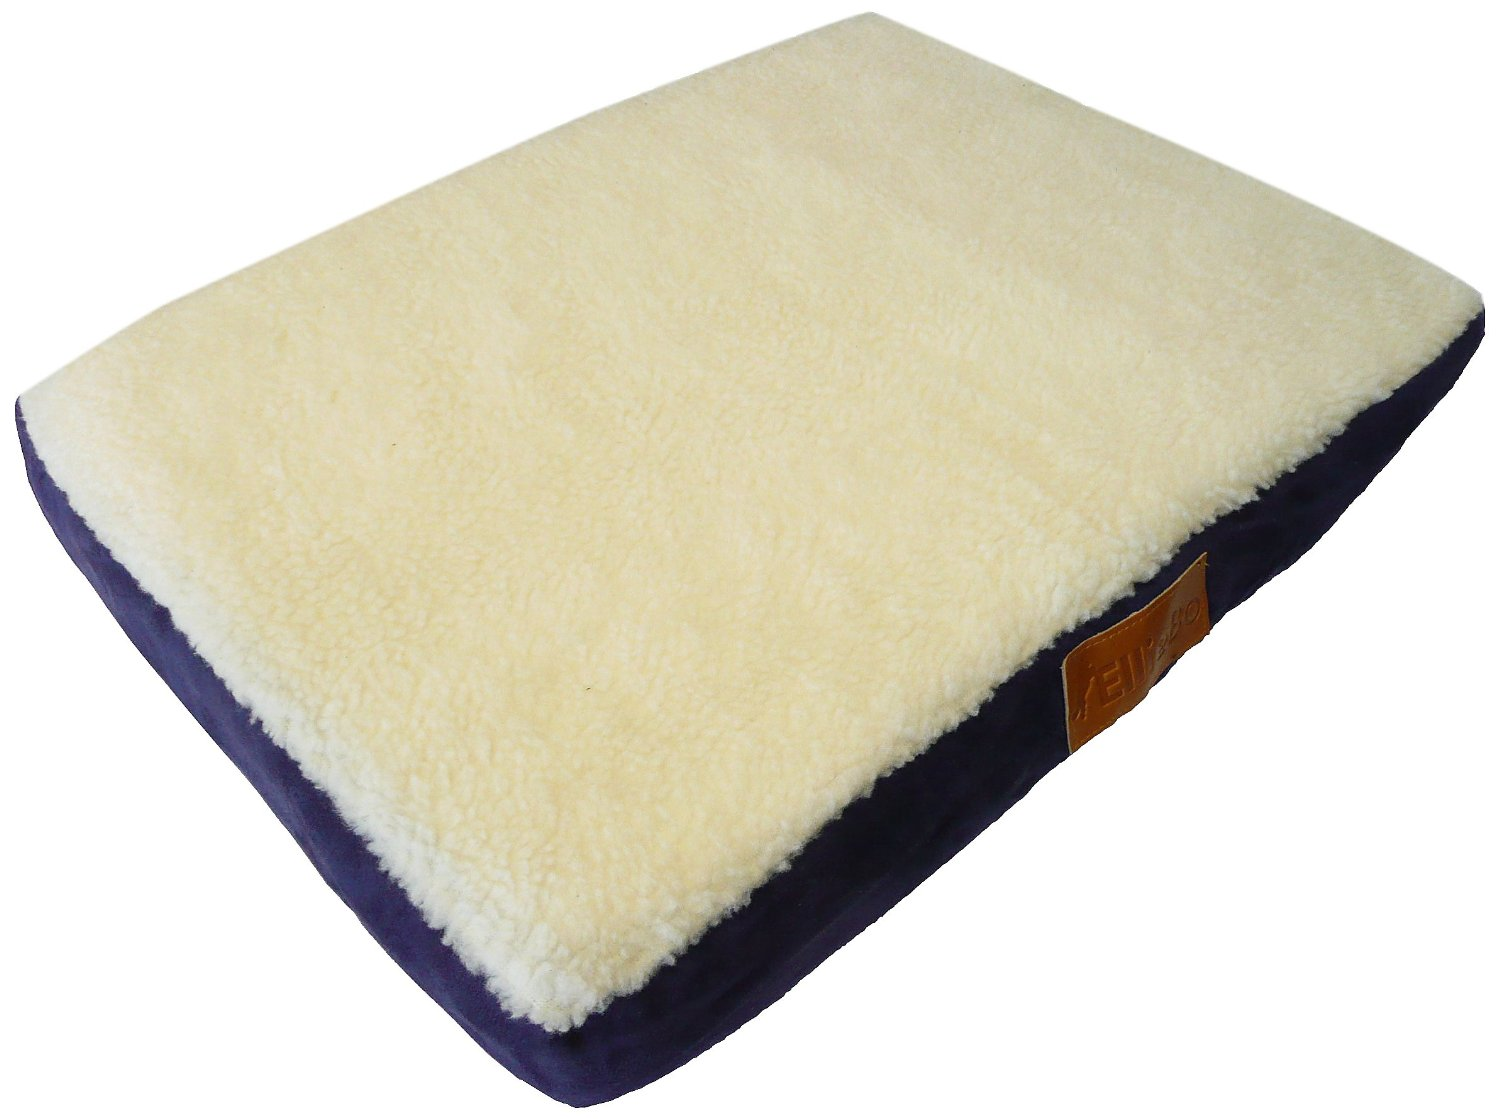 ellie-bo xxl blue memory foam dog bed with faux suede and